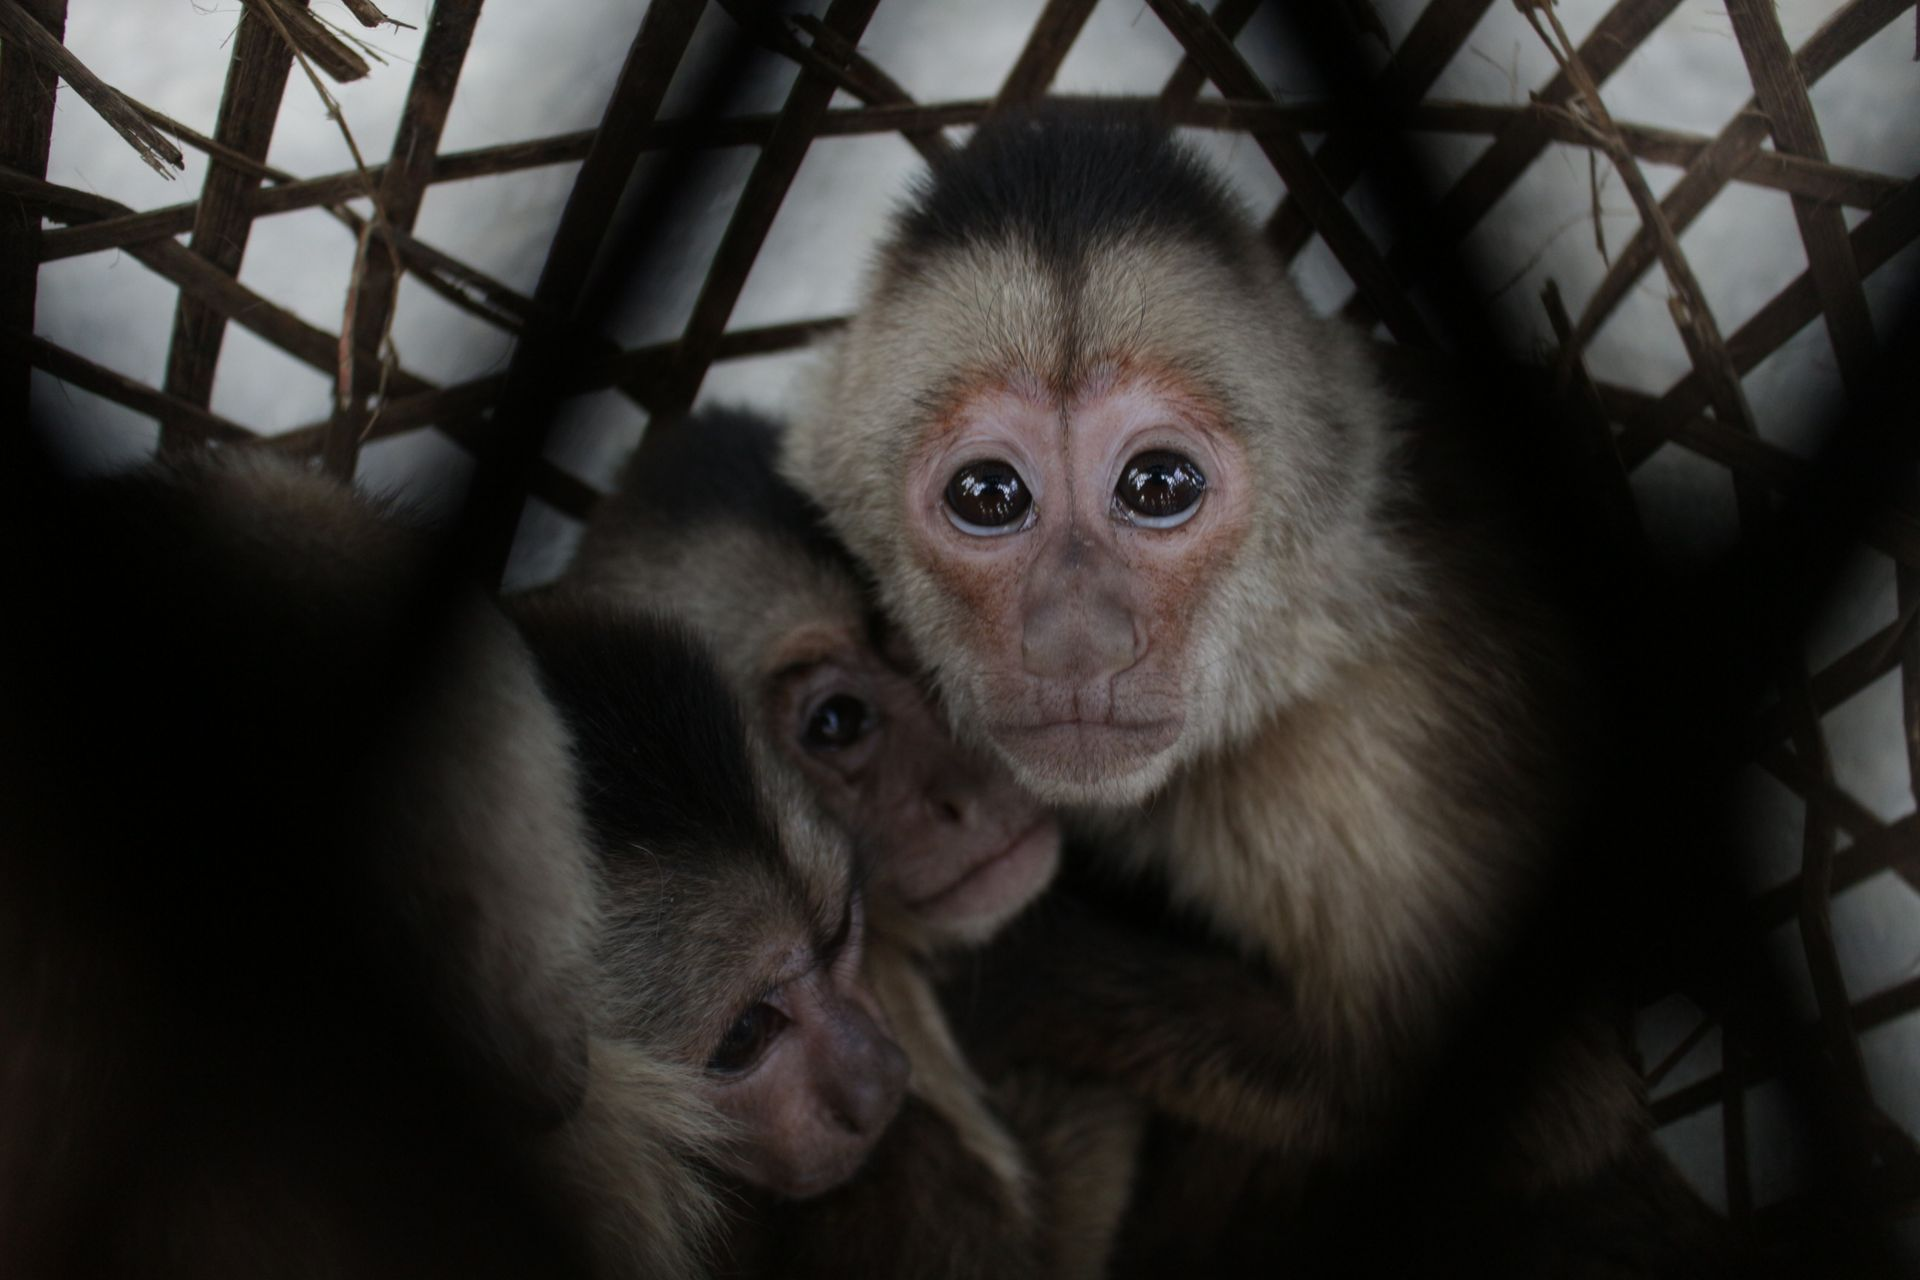 Confiscated capuchins; photo credit Stabroek News